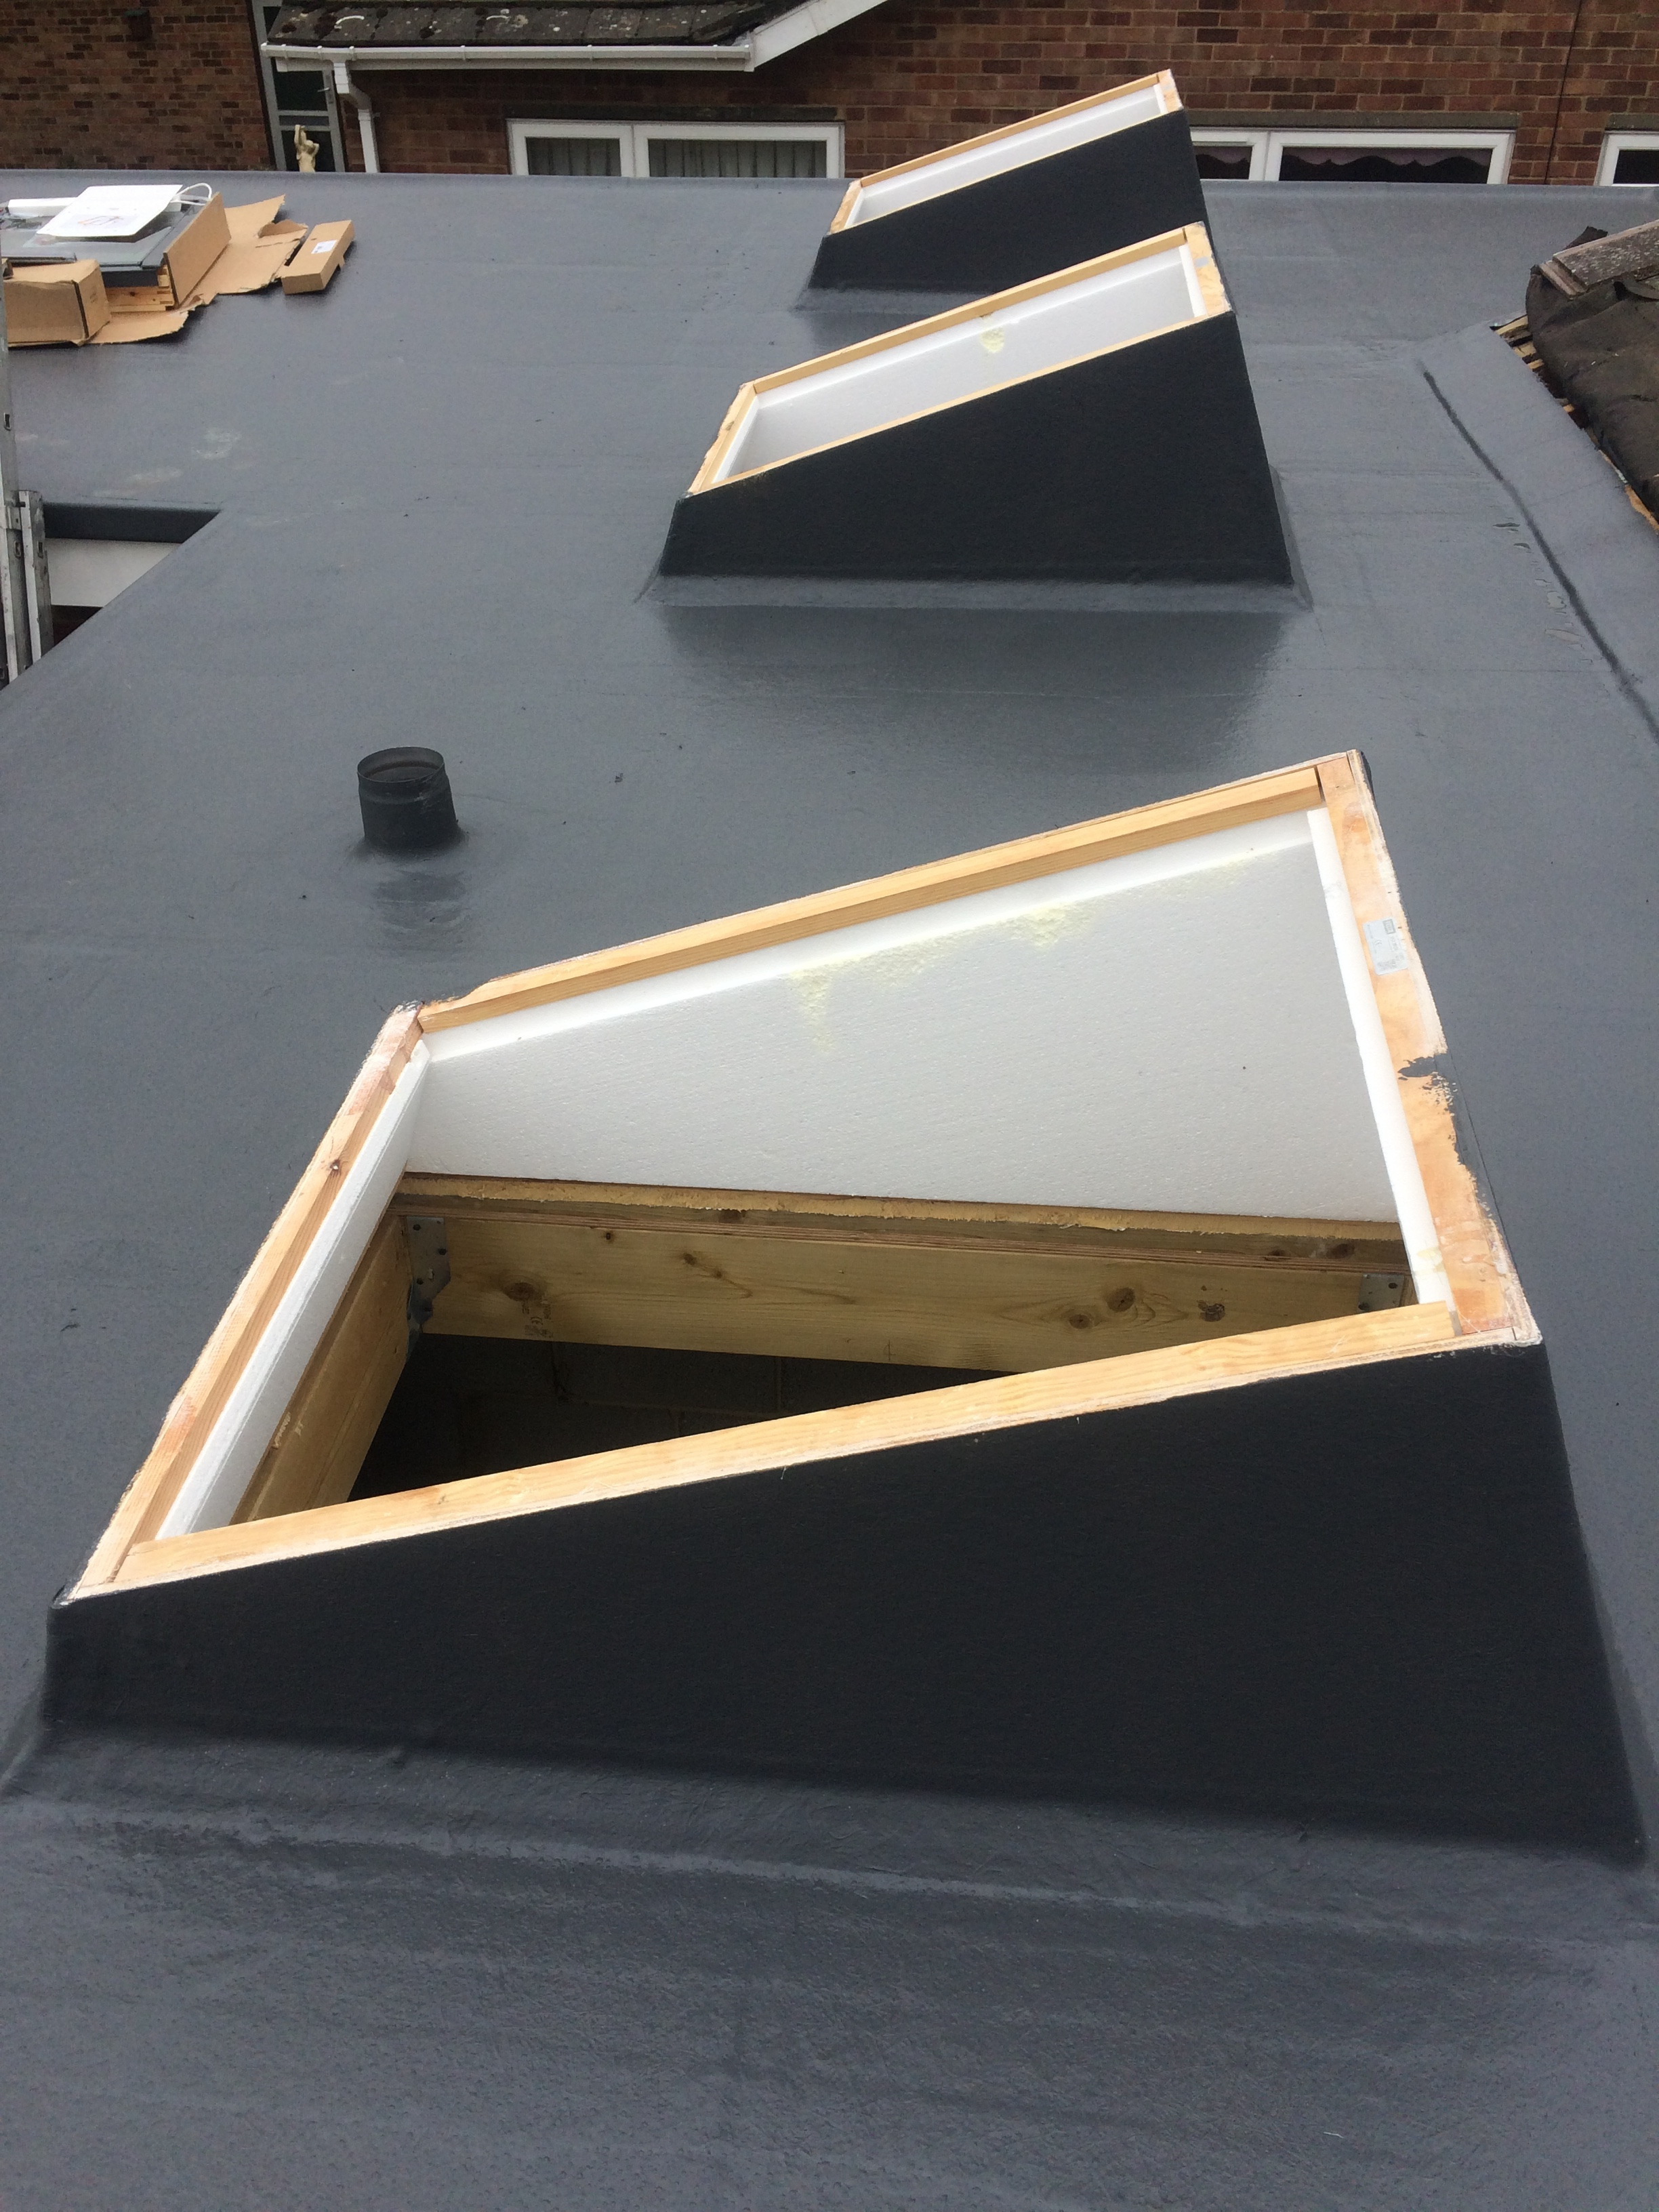 Fibre glass roof and rooflights